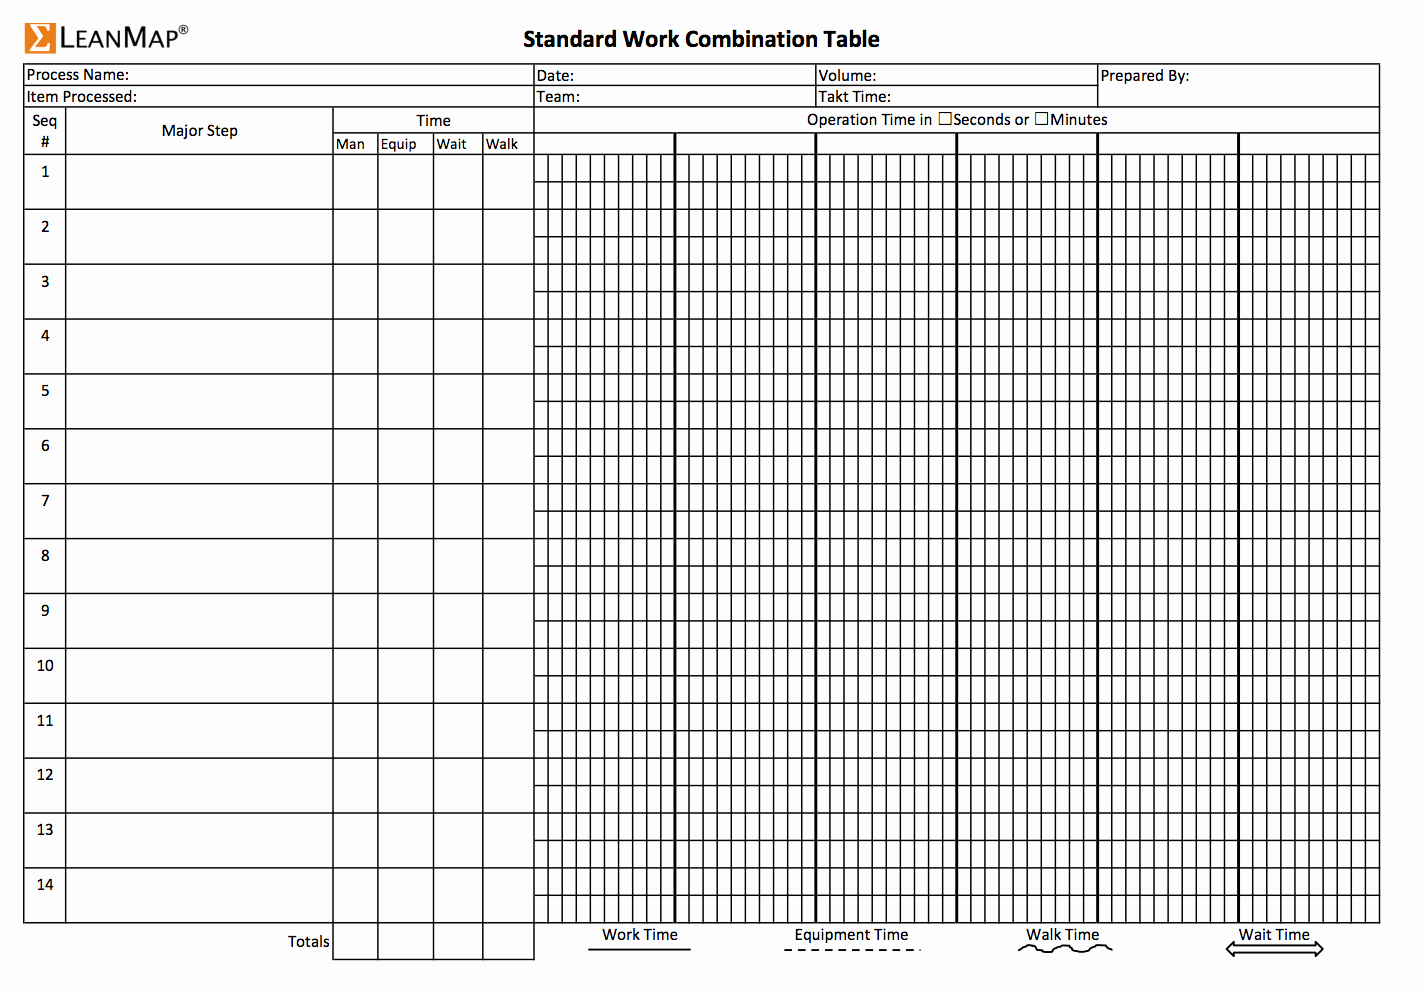 Standardized Work Templates Excel Elegant Lean Standard Work Template Excel Stdworktable 600 Templates Data